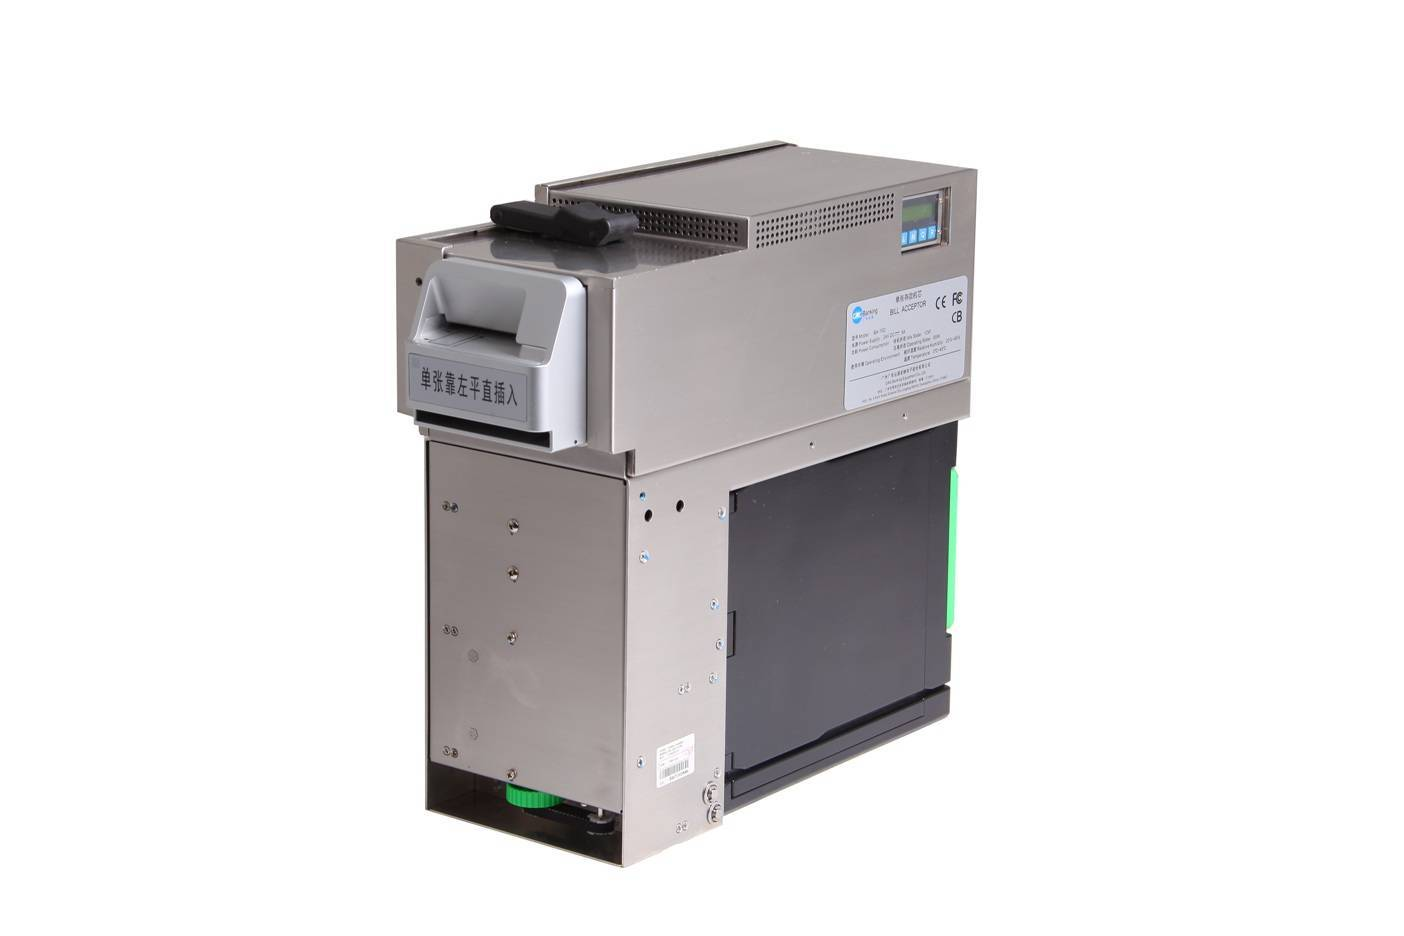 Banknote Acceptor Module for ATM